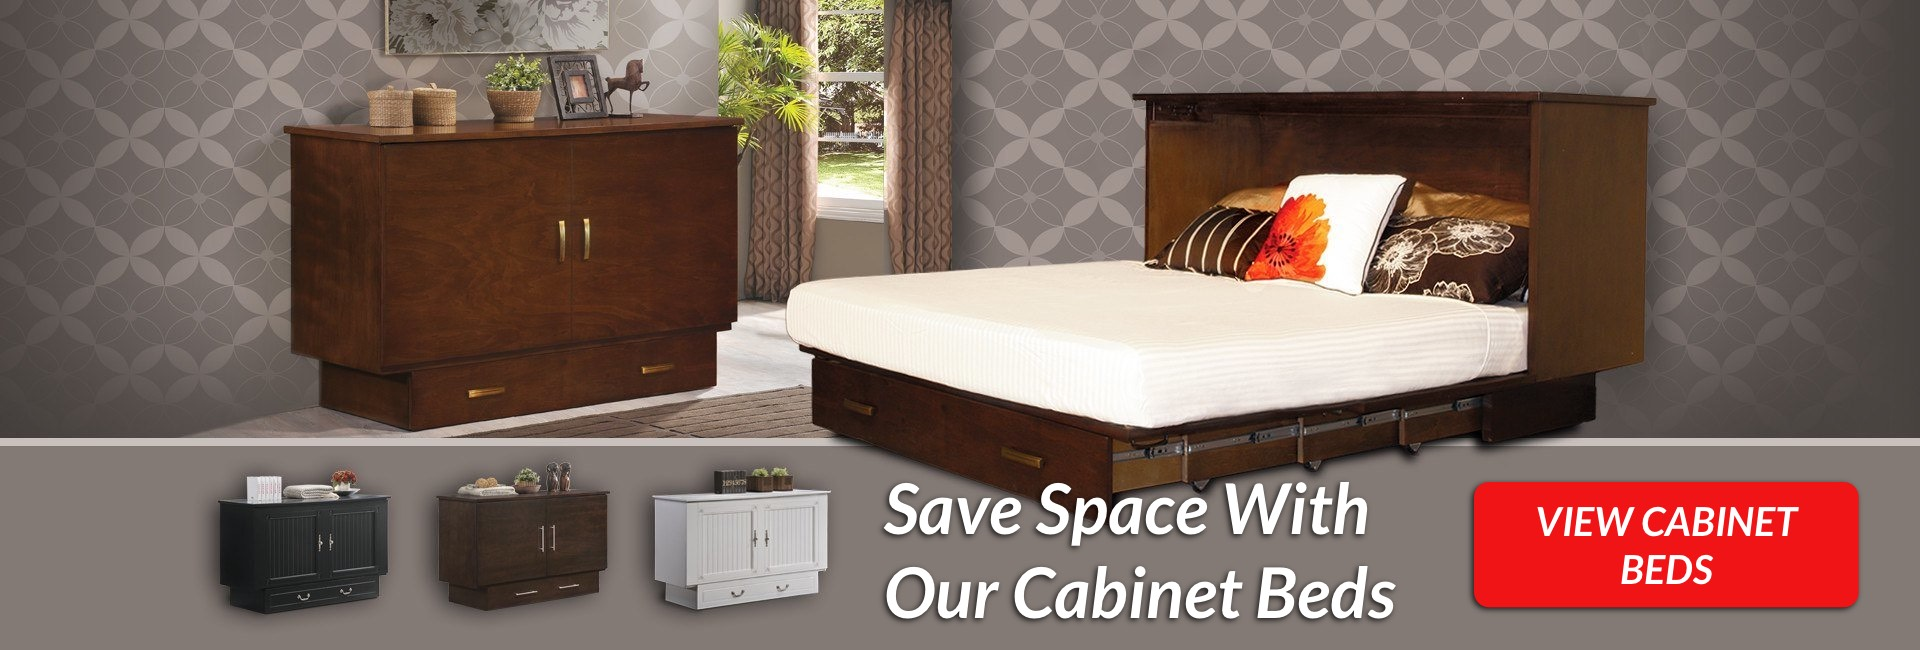 Cabinet beds made in BC